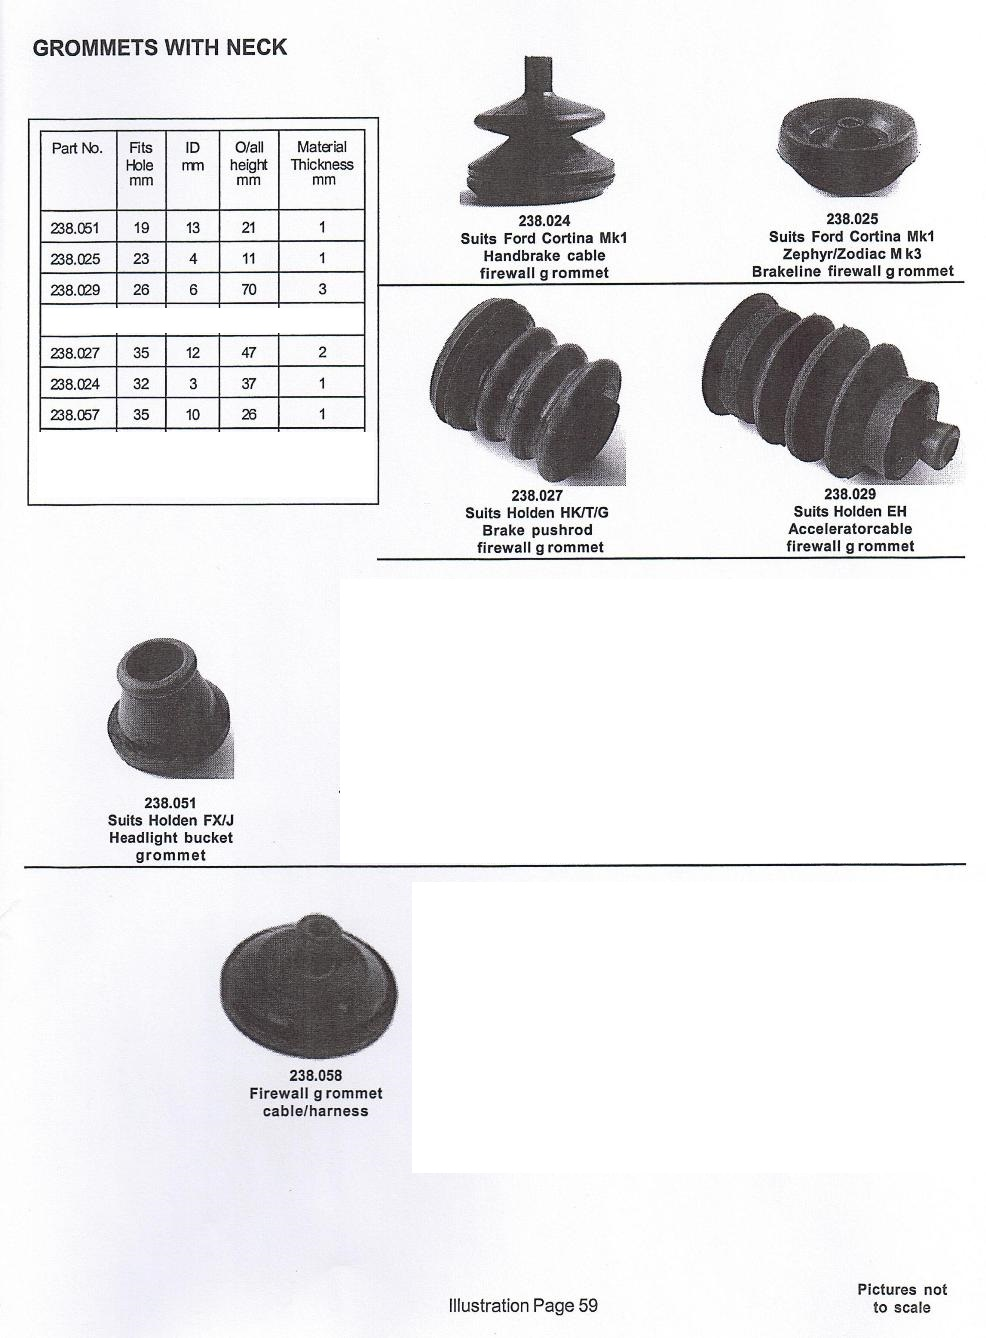 Scott Old Auto Rubber Catalogue Wire Harness Grommet Grommets With Neck Push Rod Type Page 59